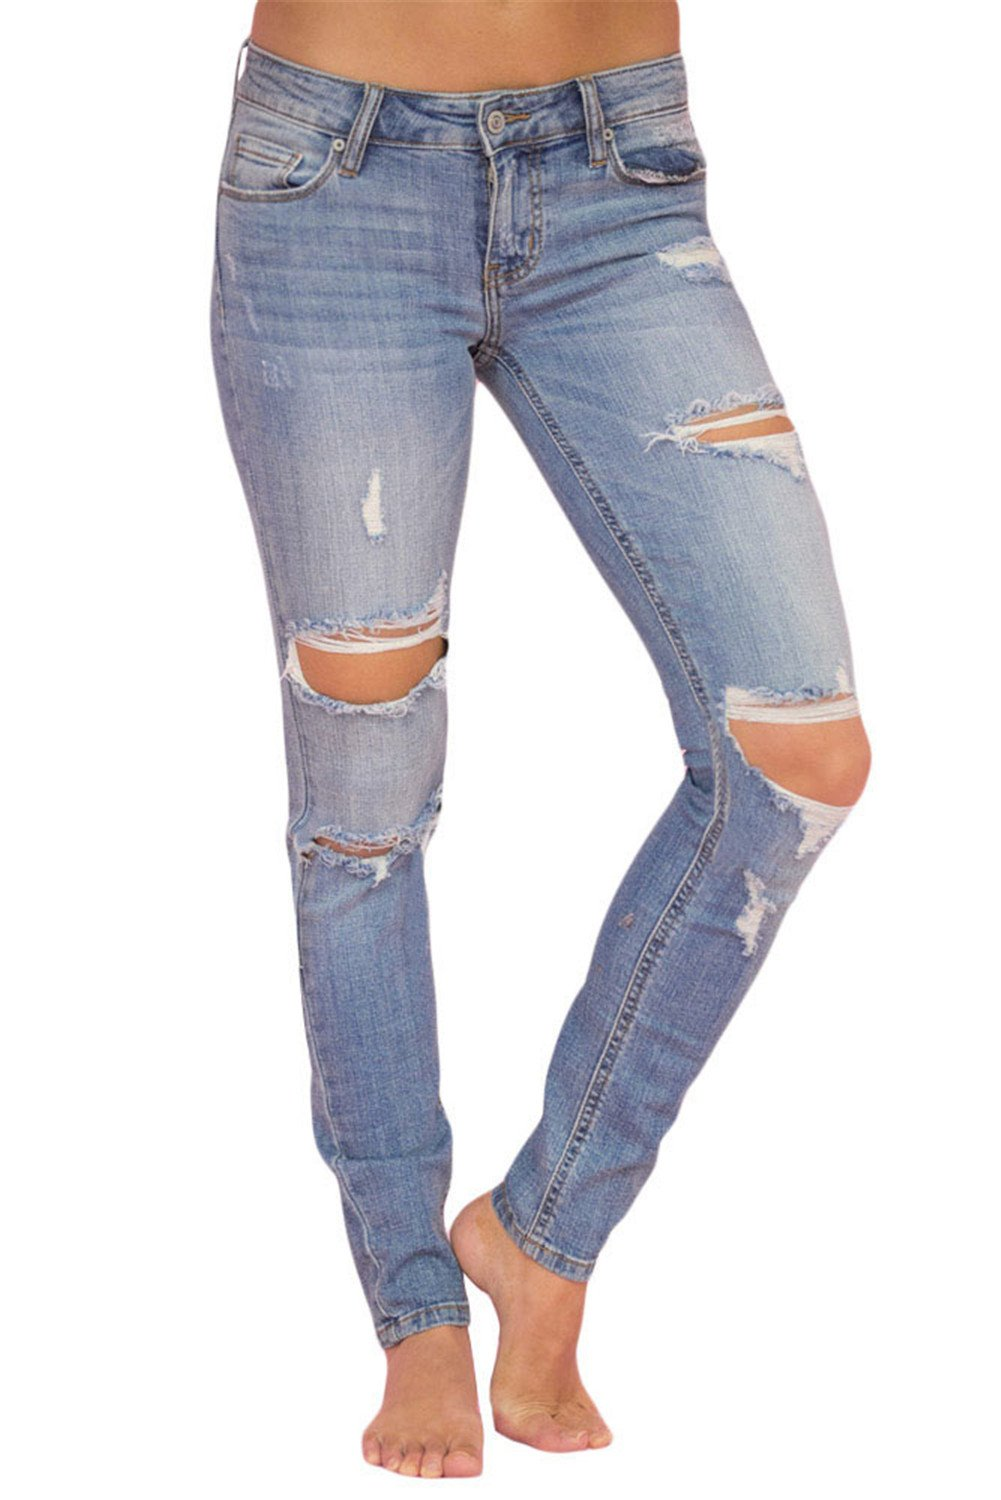 Just For Plus Women's Jeans Wash Denim Skinny M-XXL Ripped Destroyed Distressed Style Summer Long Pants,Light Blue,XL